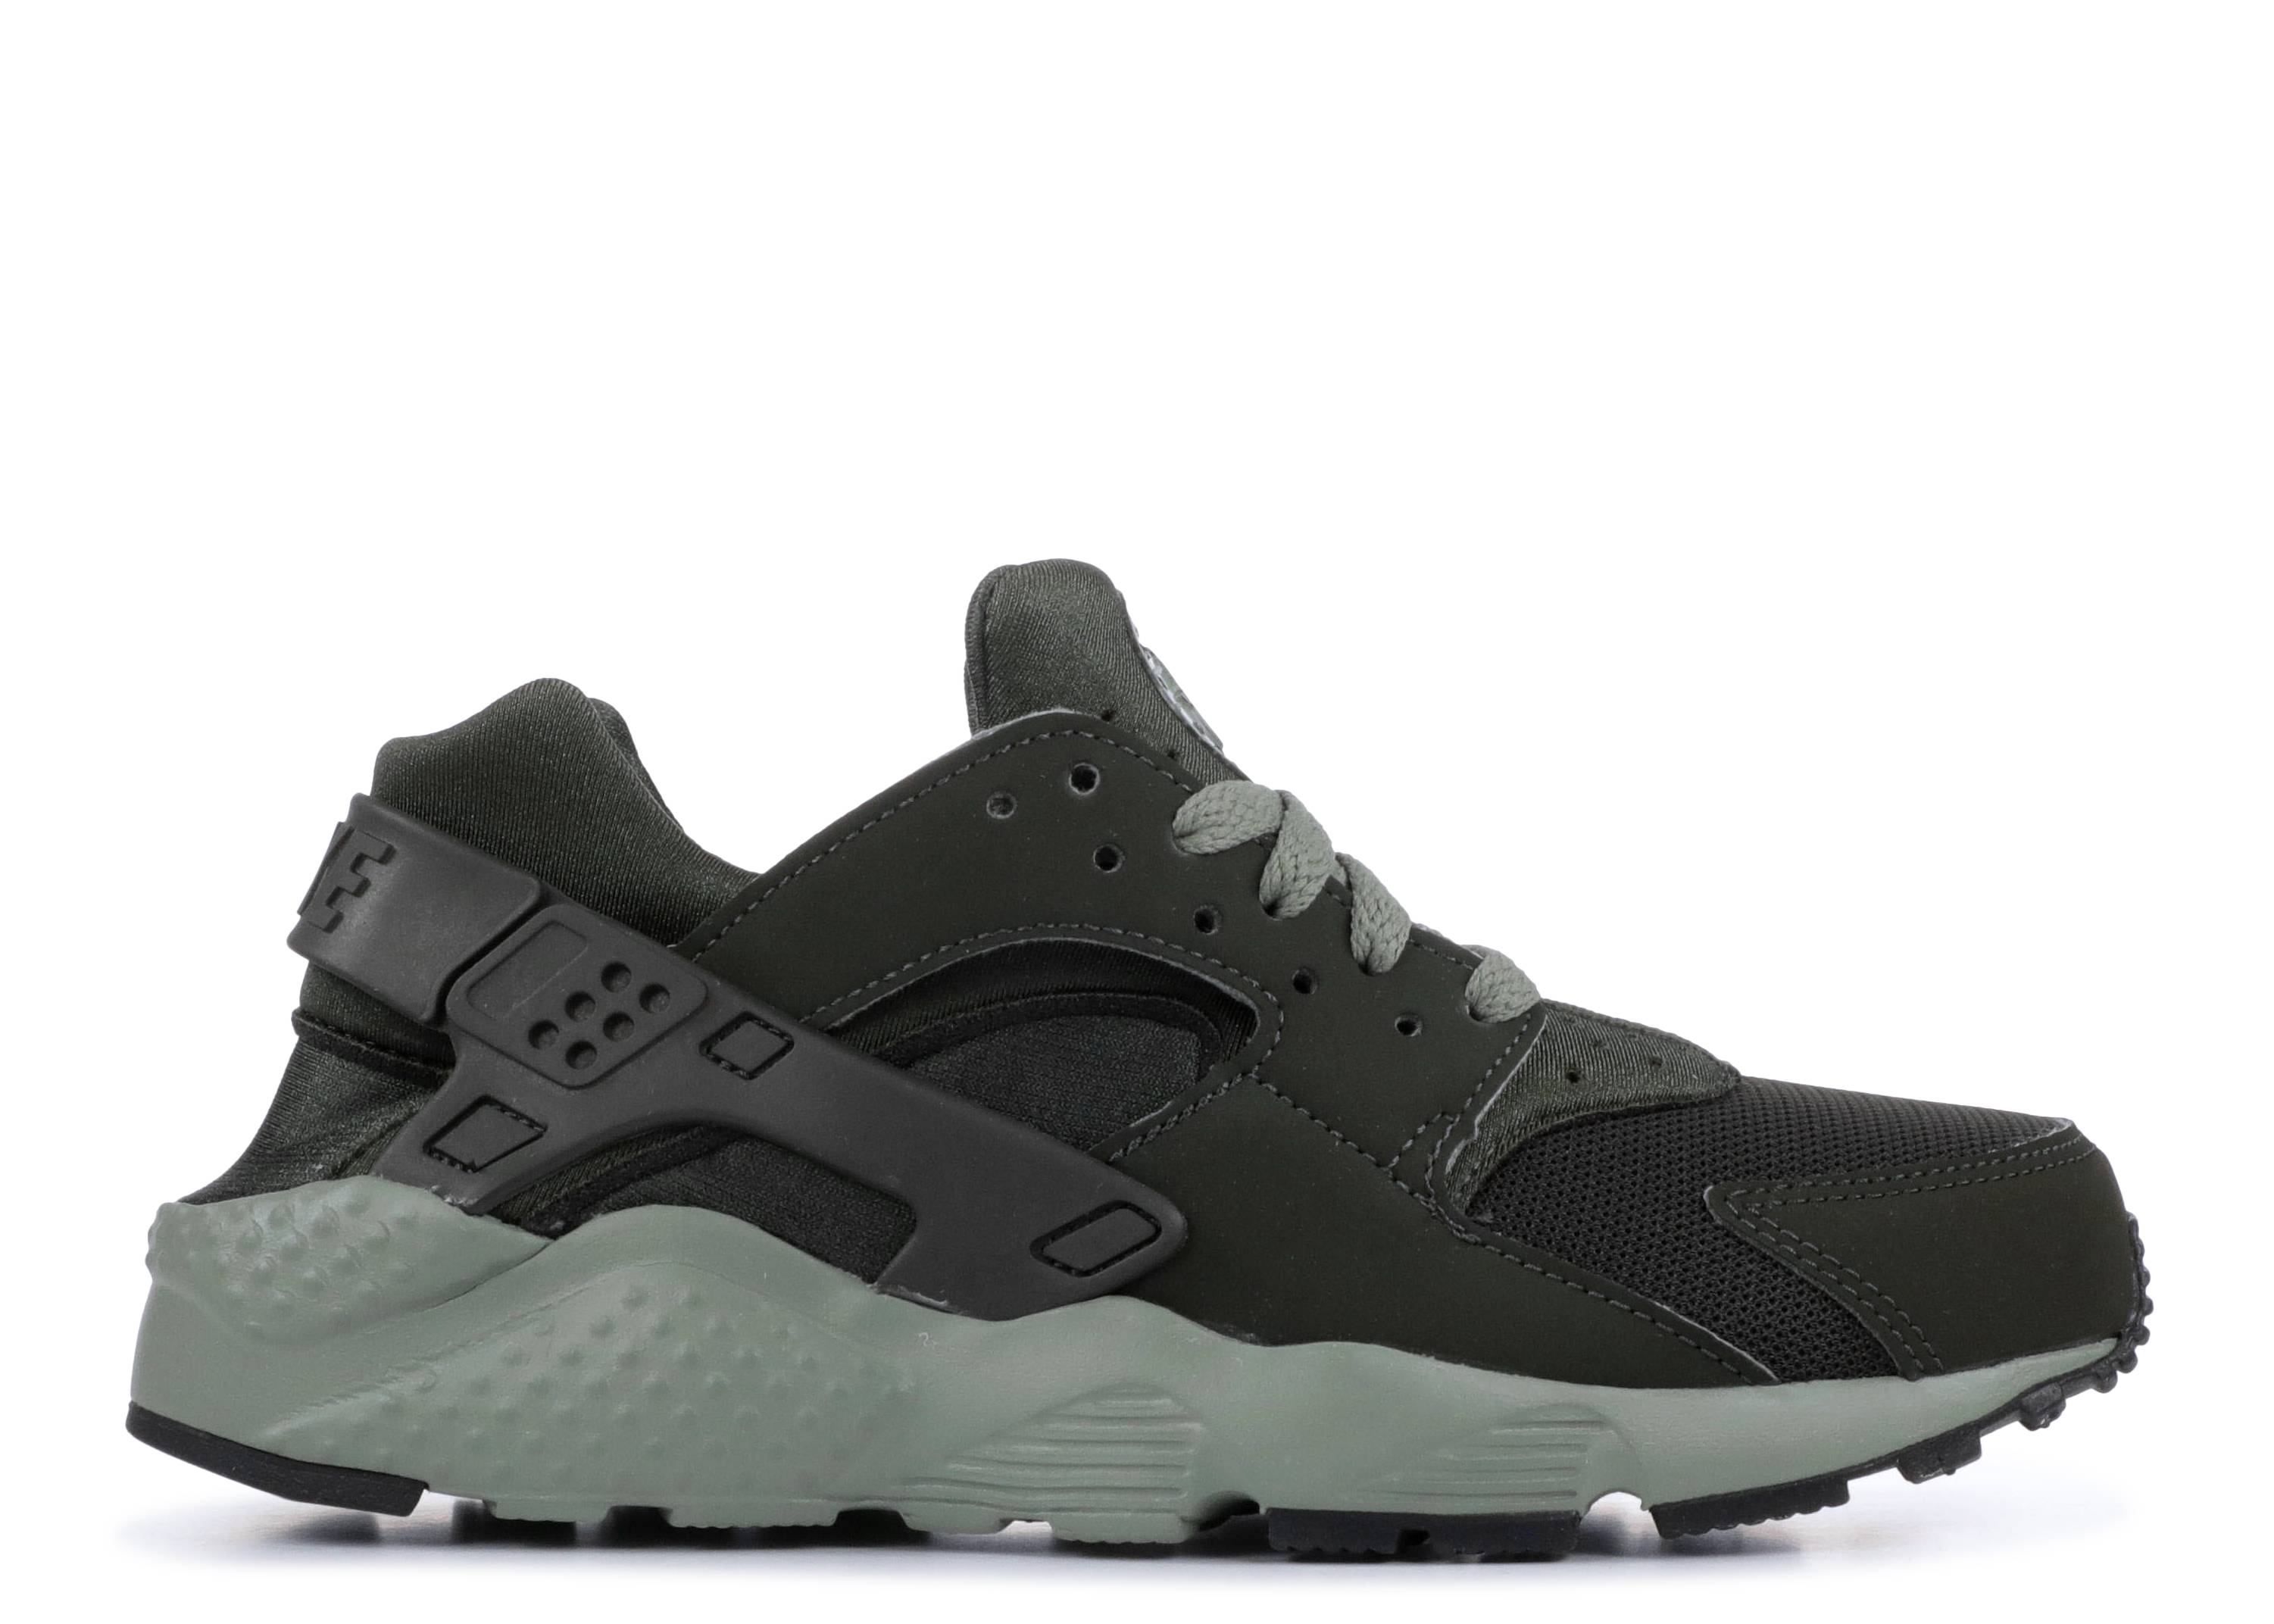 bbb18f63e1c59 Huarache Run GS